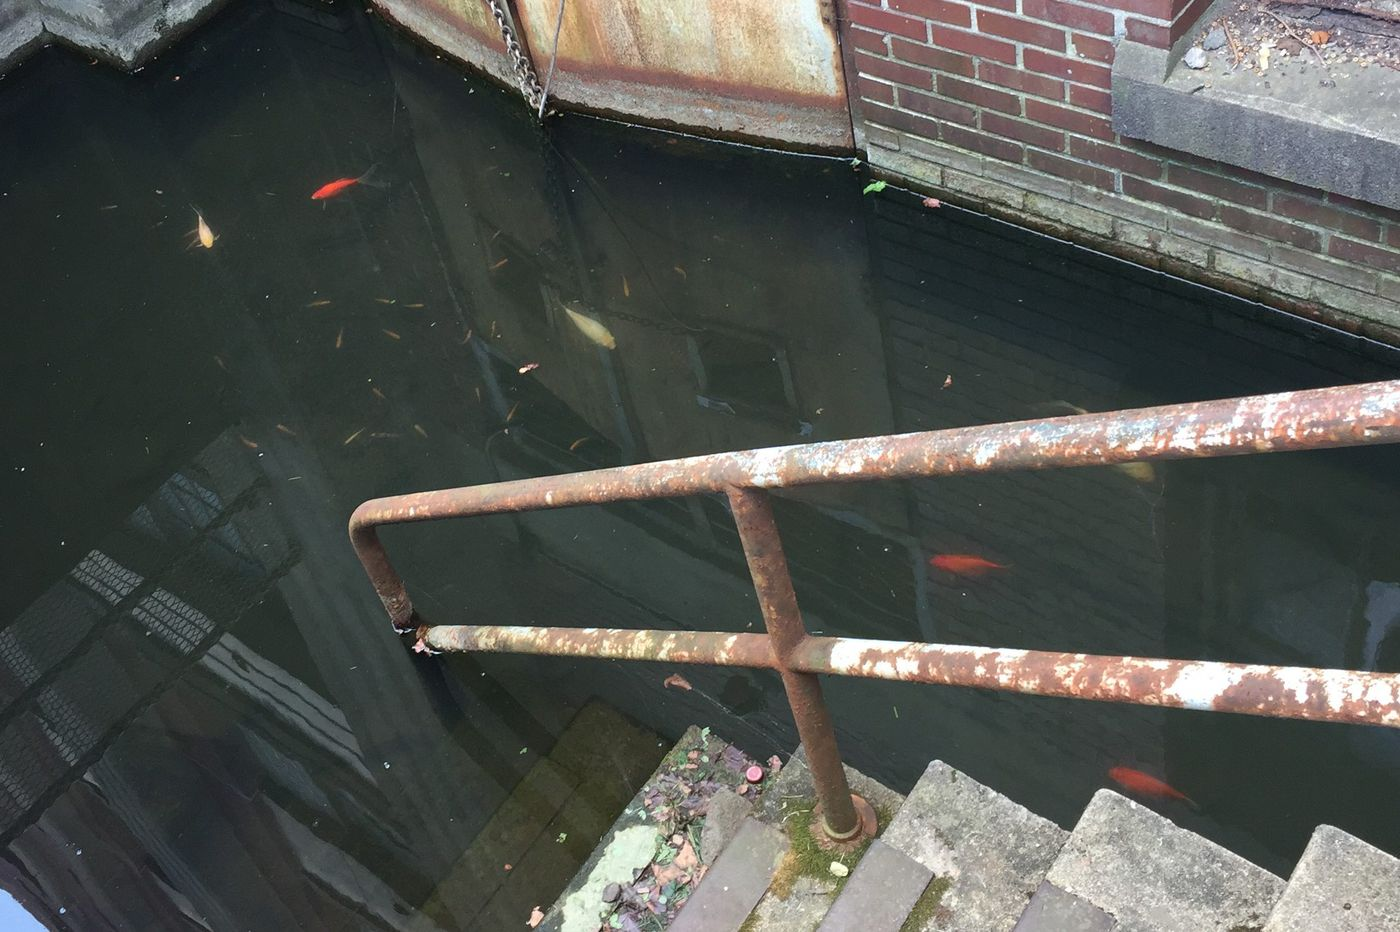 Cellar-dwelling fish are a mystery in South Philadelphia's Navy Yard